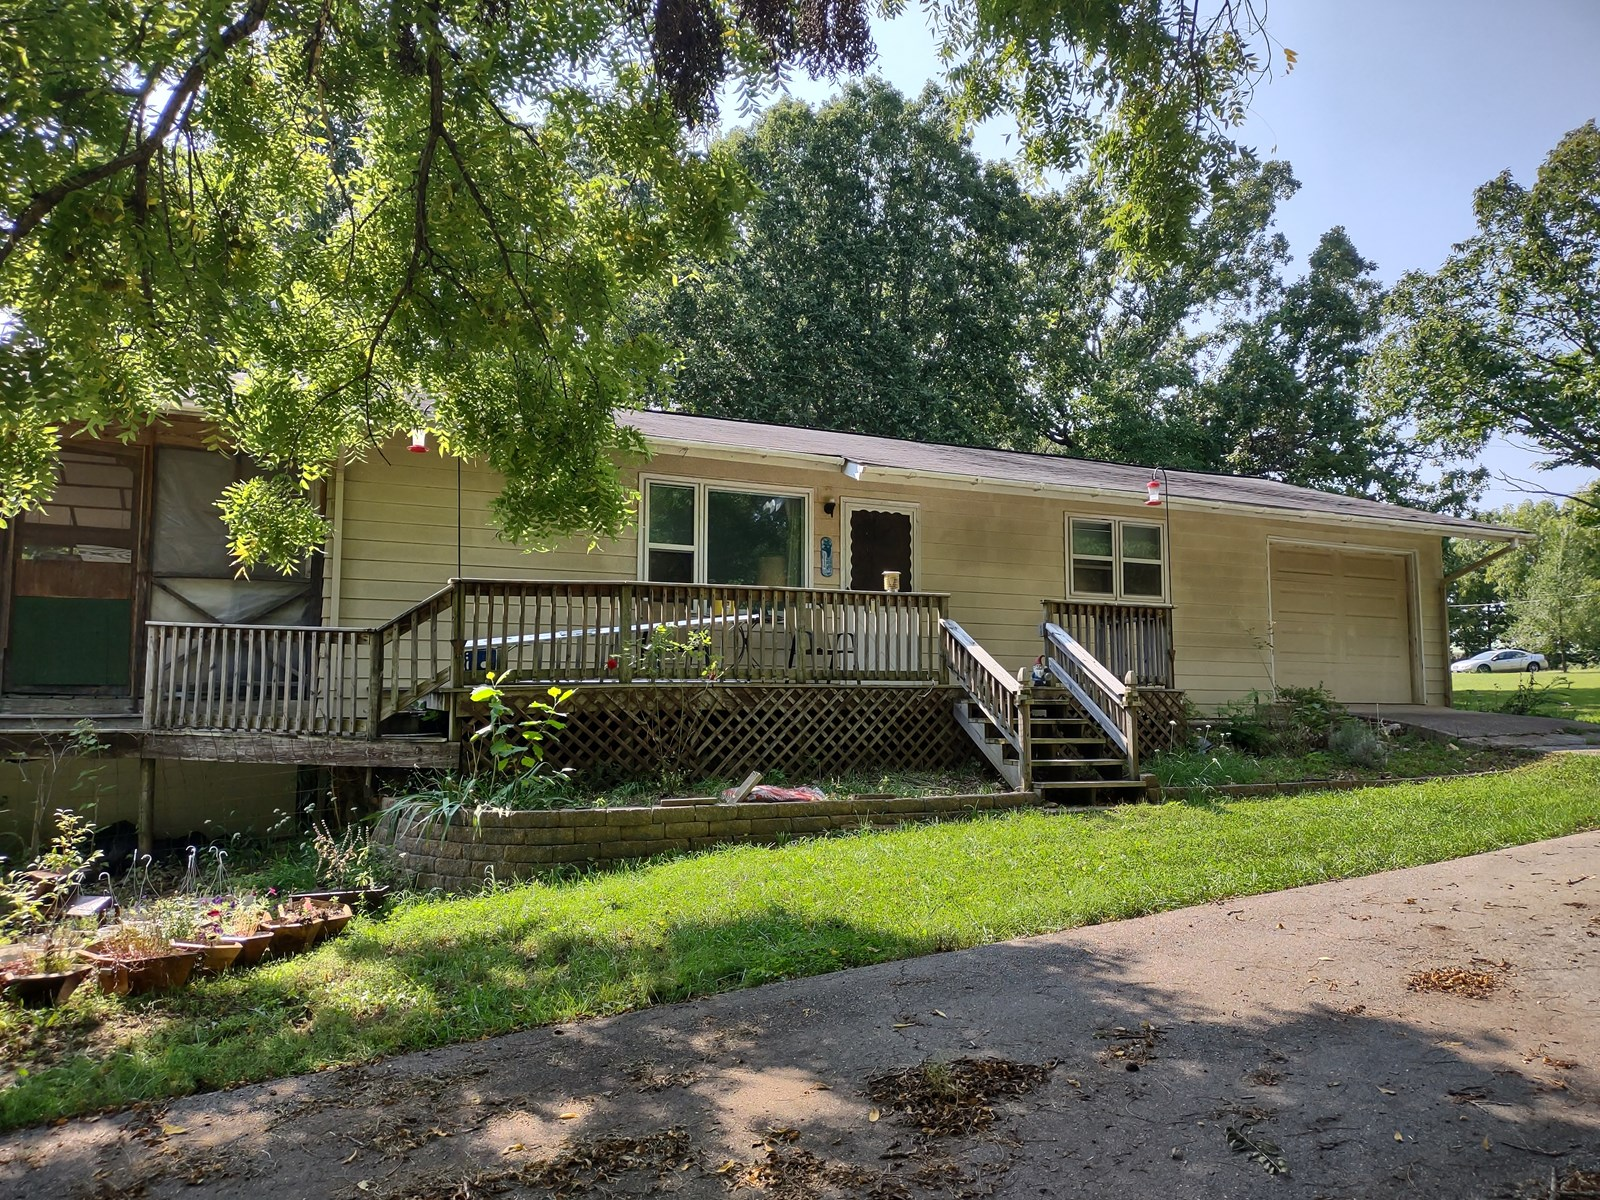 Country Home for sale in St Robert, Mo.